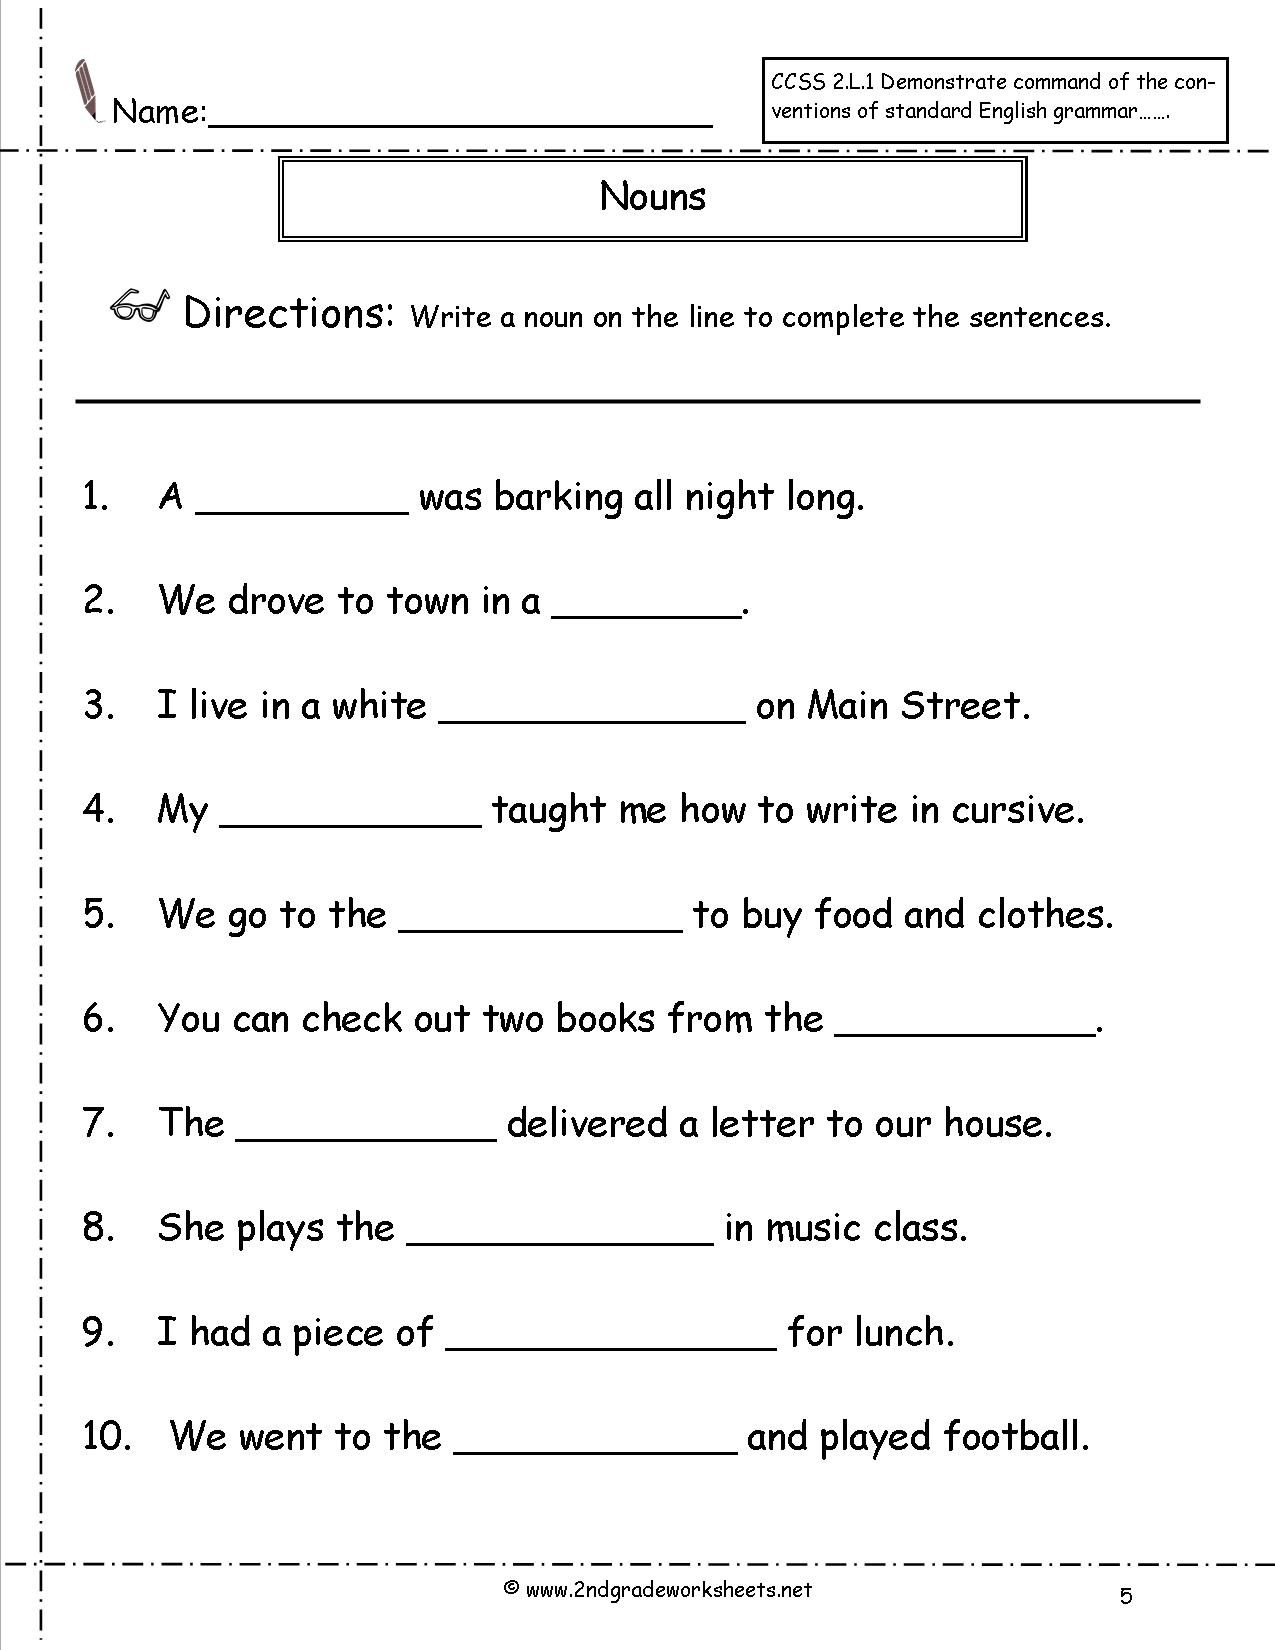 Noun Worksheets For Second Grade